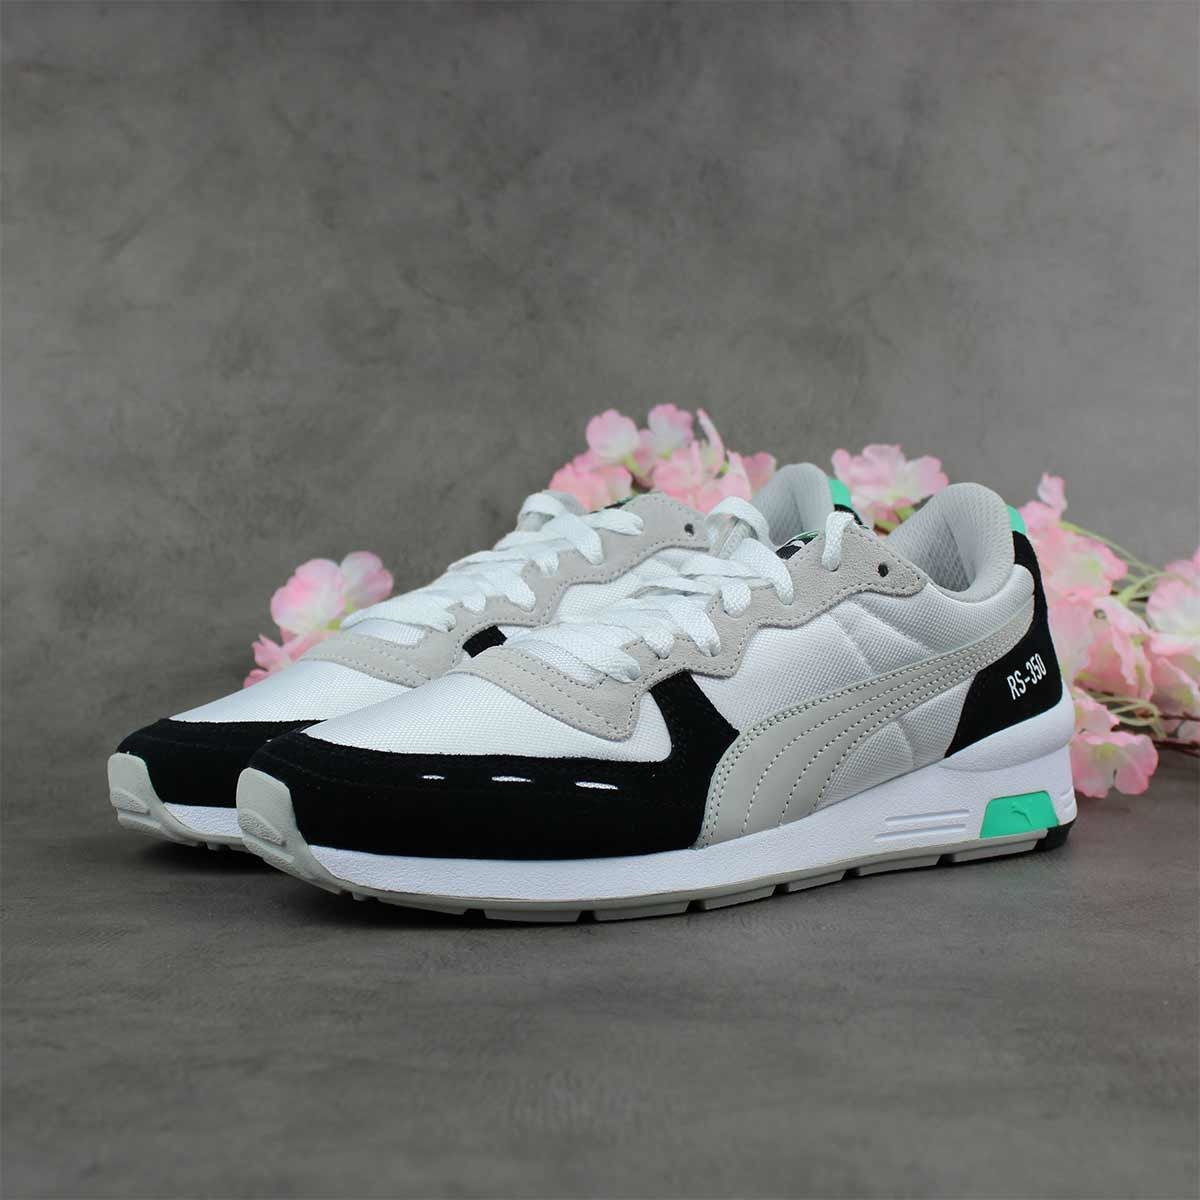 Puma RS-350 RE-INVENTION (Black) 367914-01